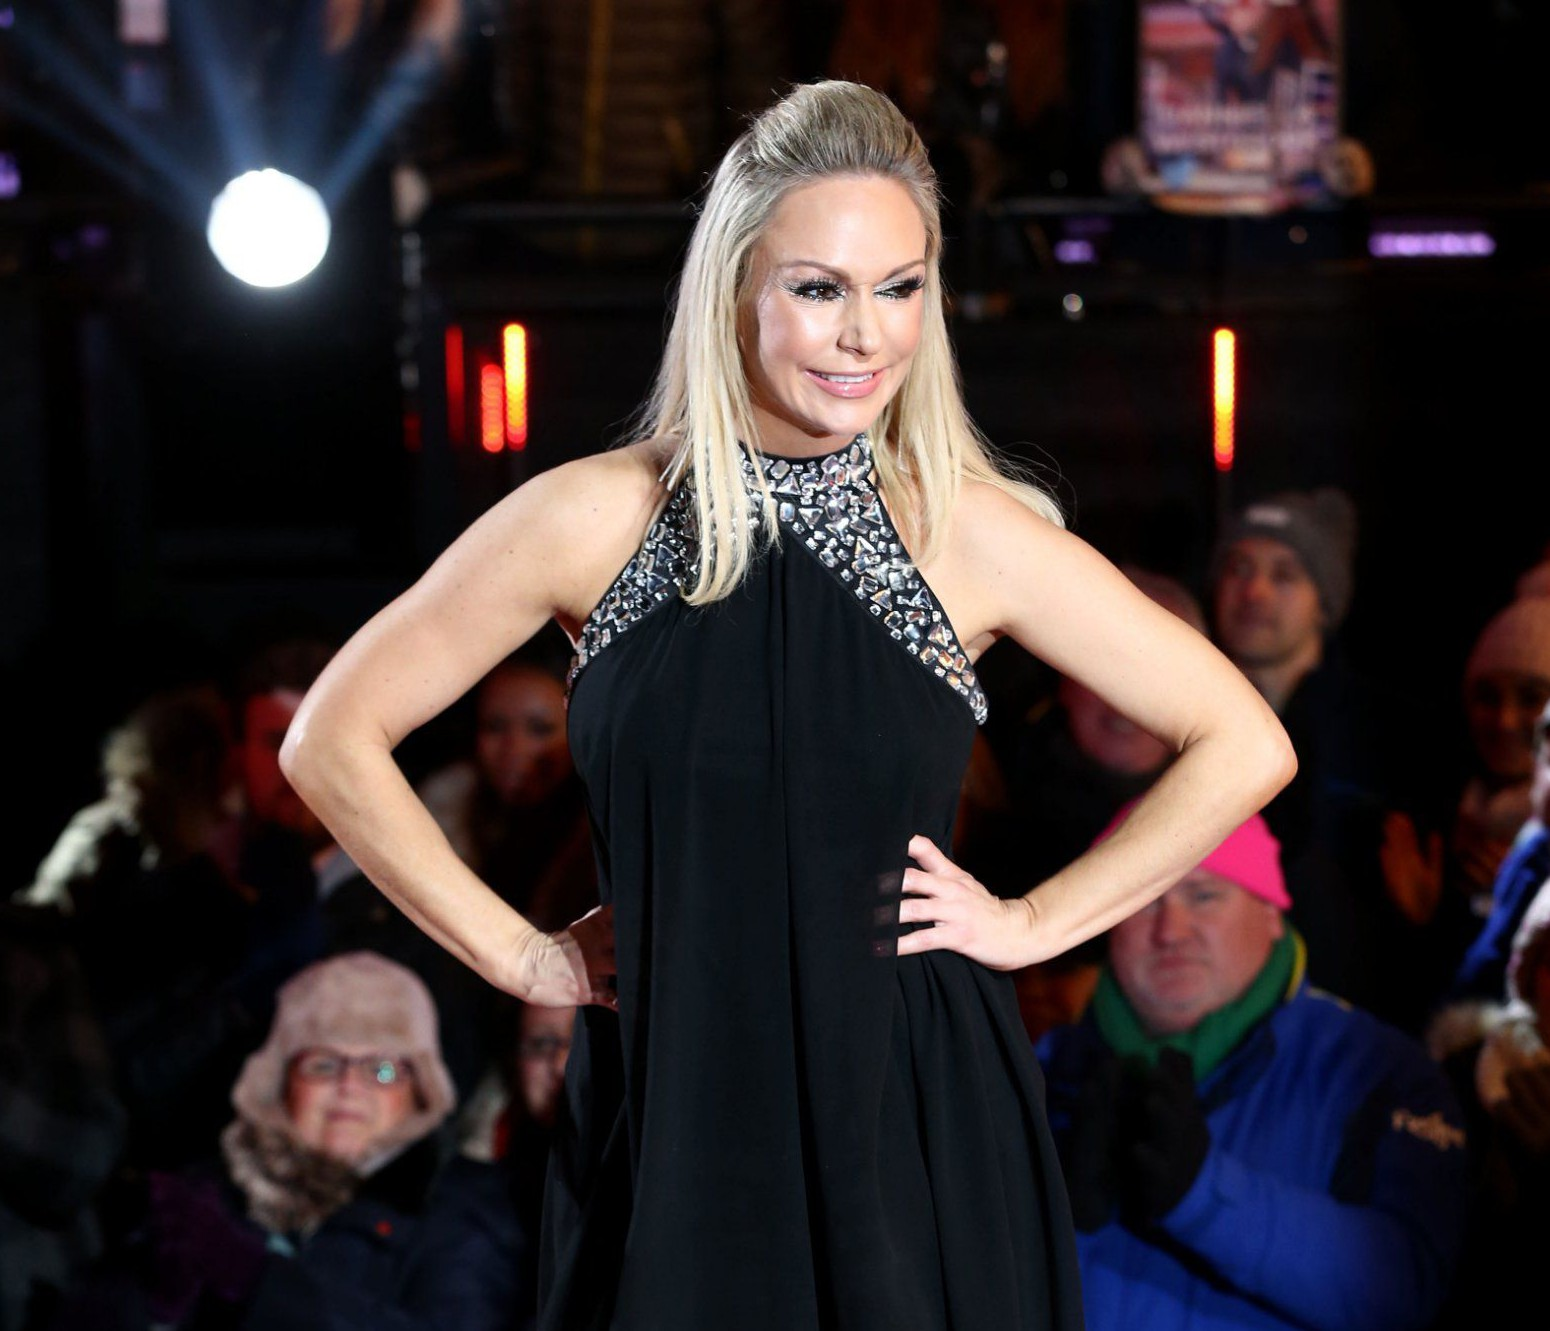 Ben Cohen's ex wife Abby 'thought Kristina Rihanoff pregnancy announcement was tacky'